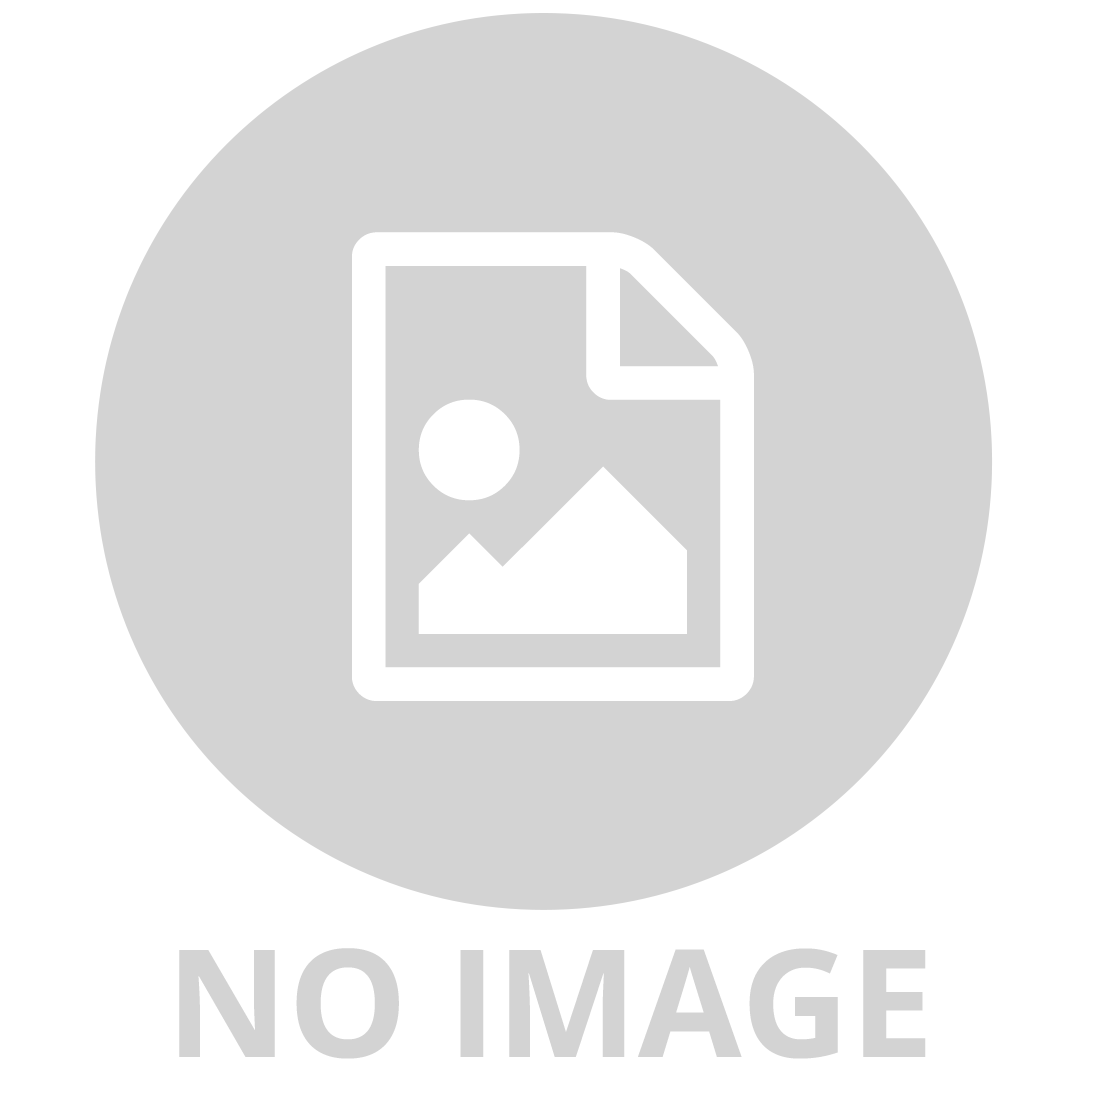 WOODEN STORYBOOK JIGSAW PUZZLE